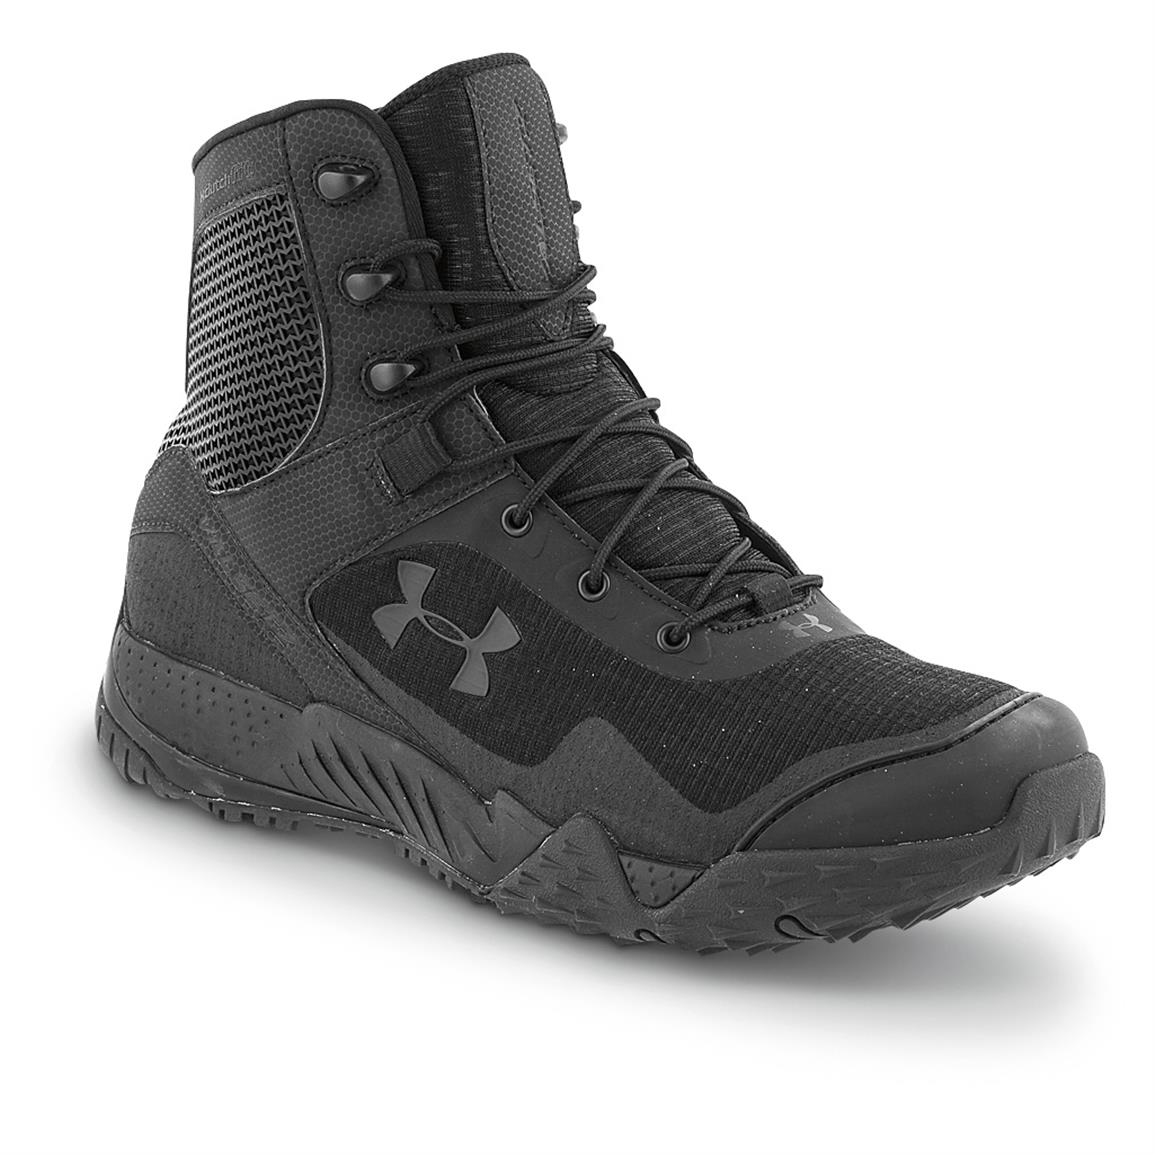 Under Armour Men's Valsetz Tactical RTS Tactical Boots, Black